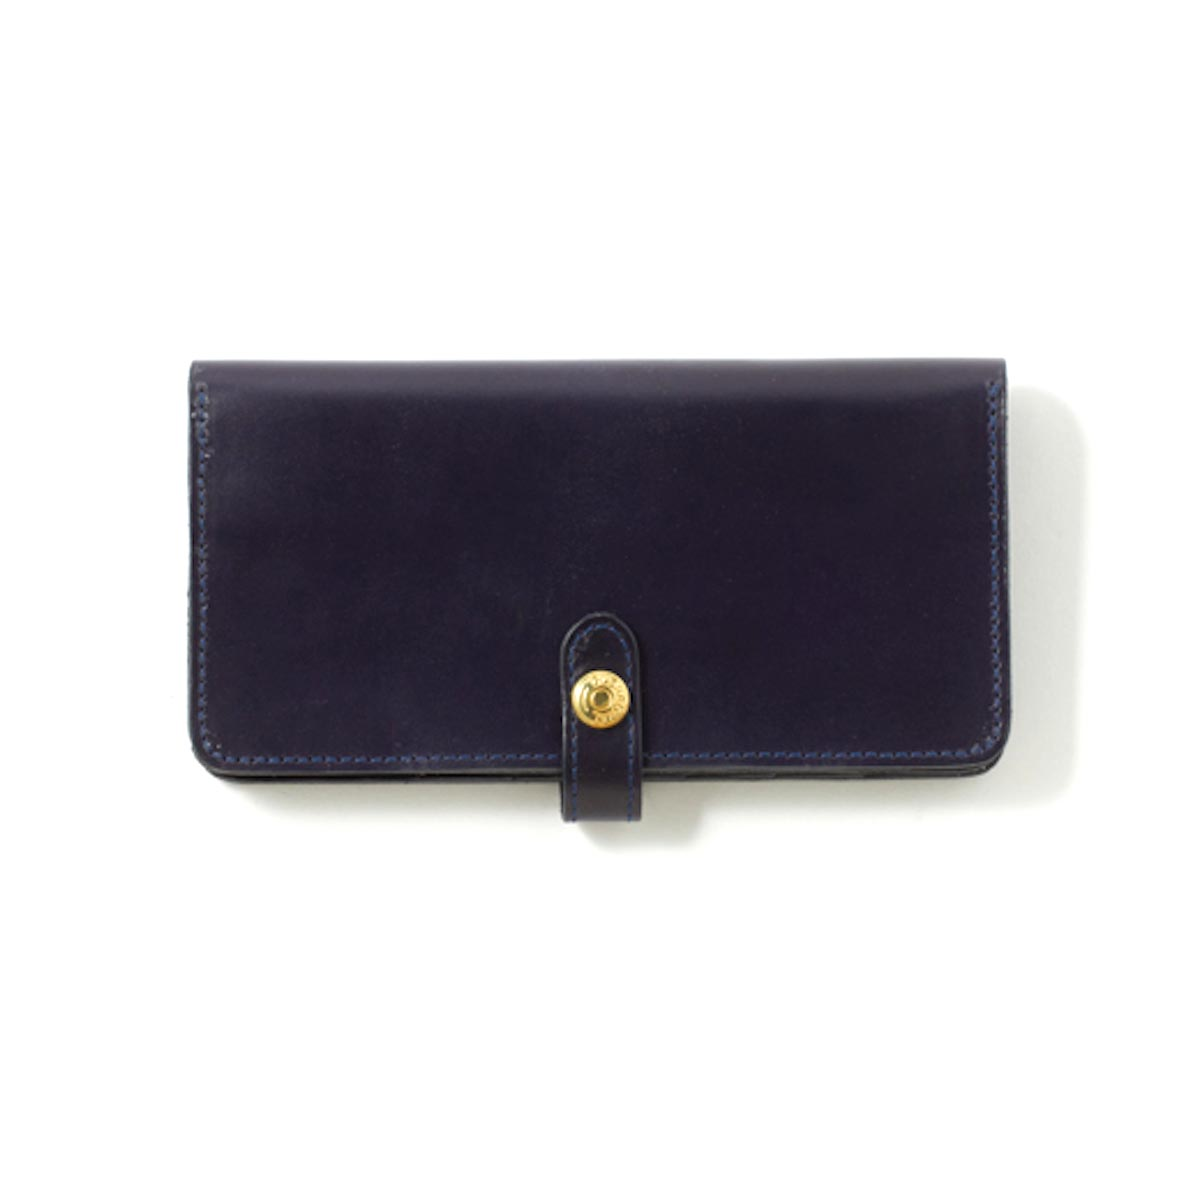 GLENROYAL / ROUND LONG PURSE -DARK BLUE